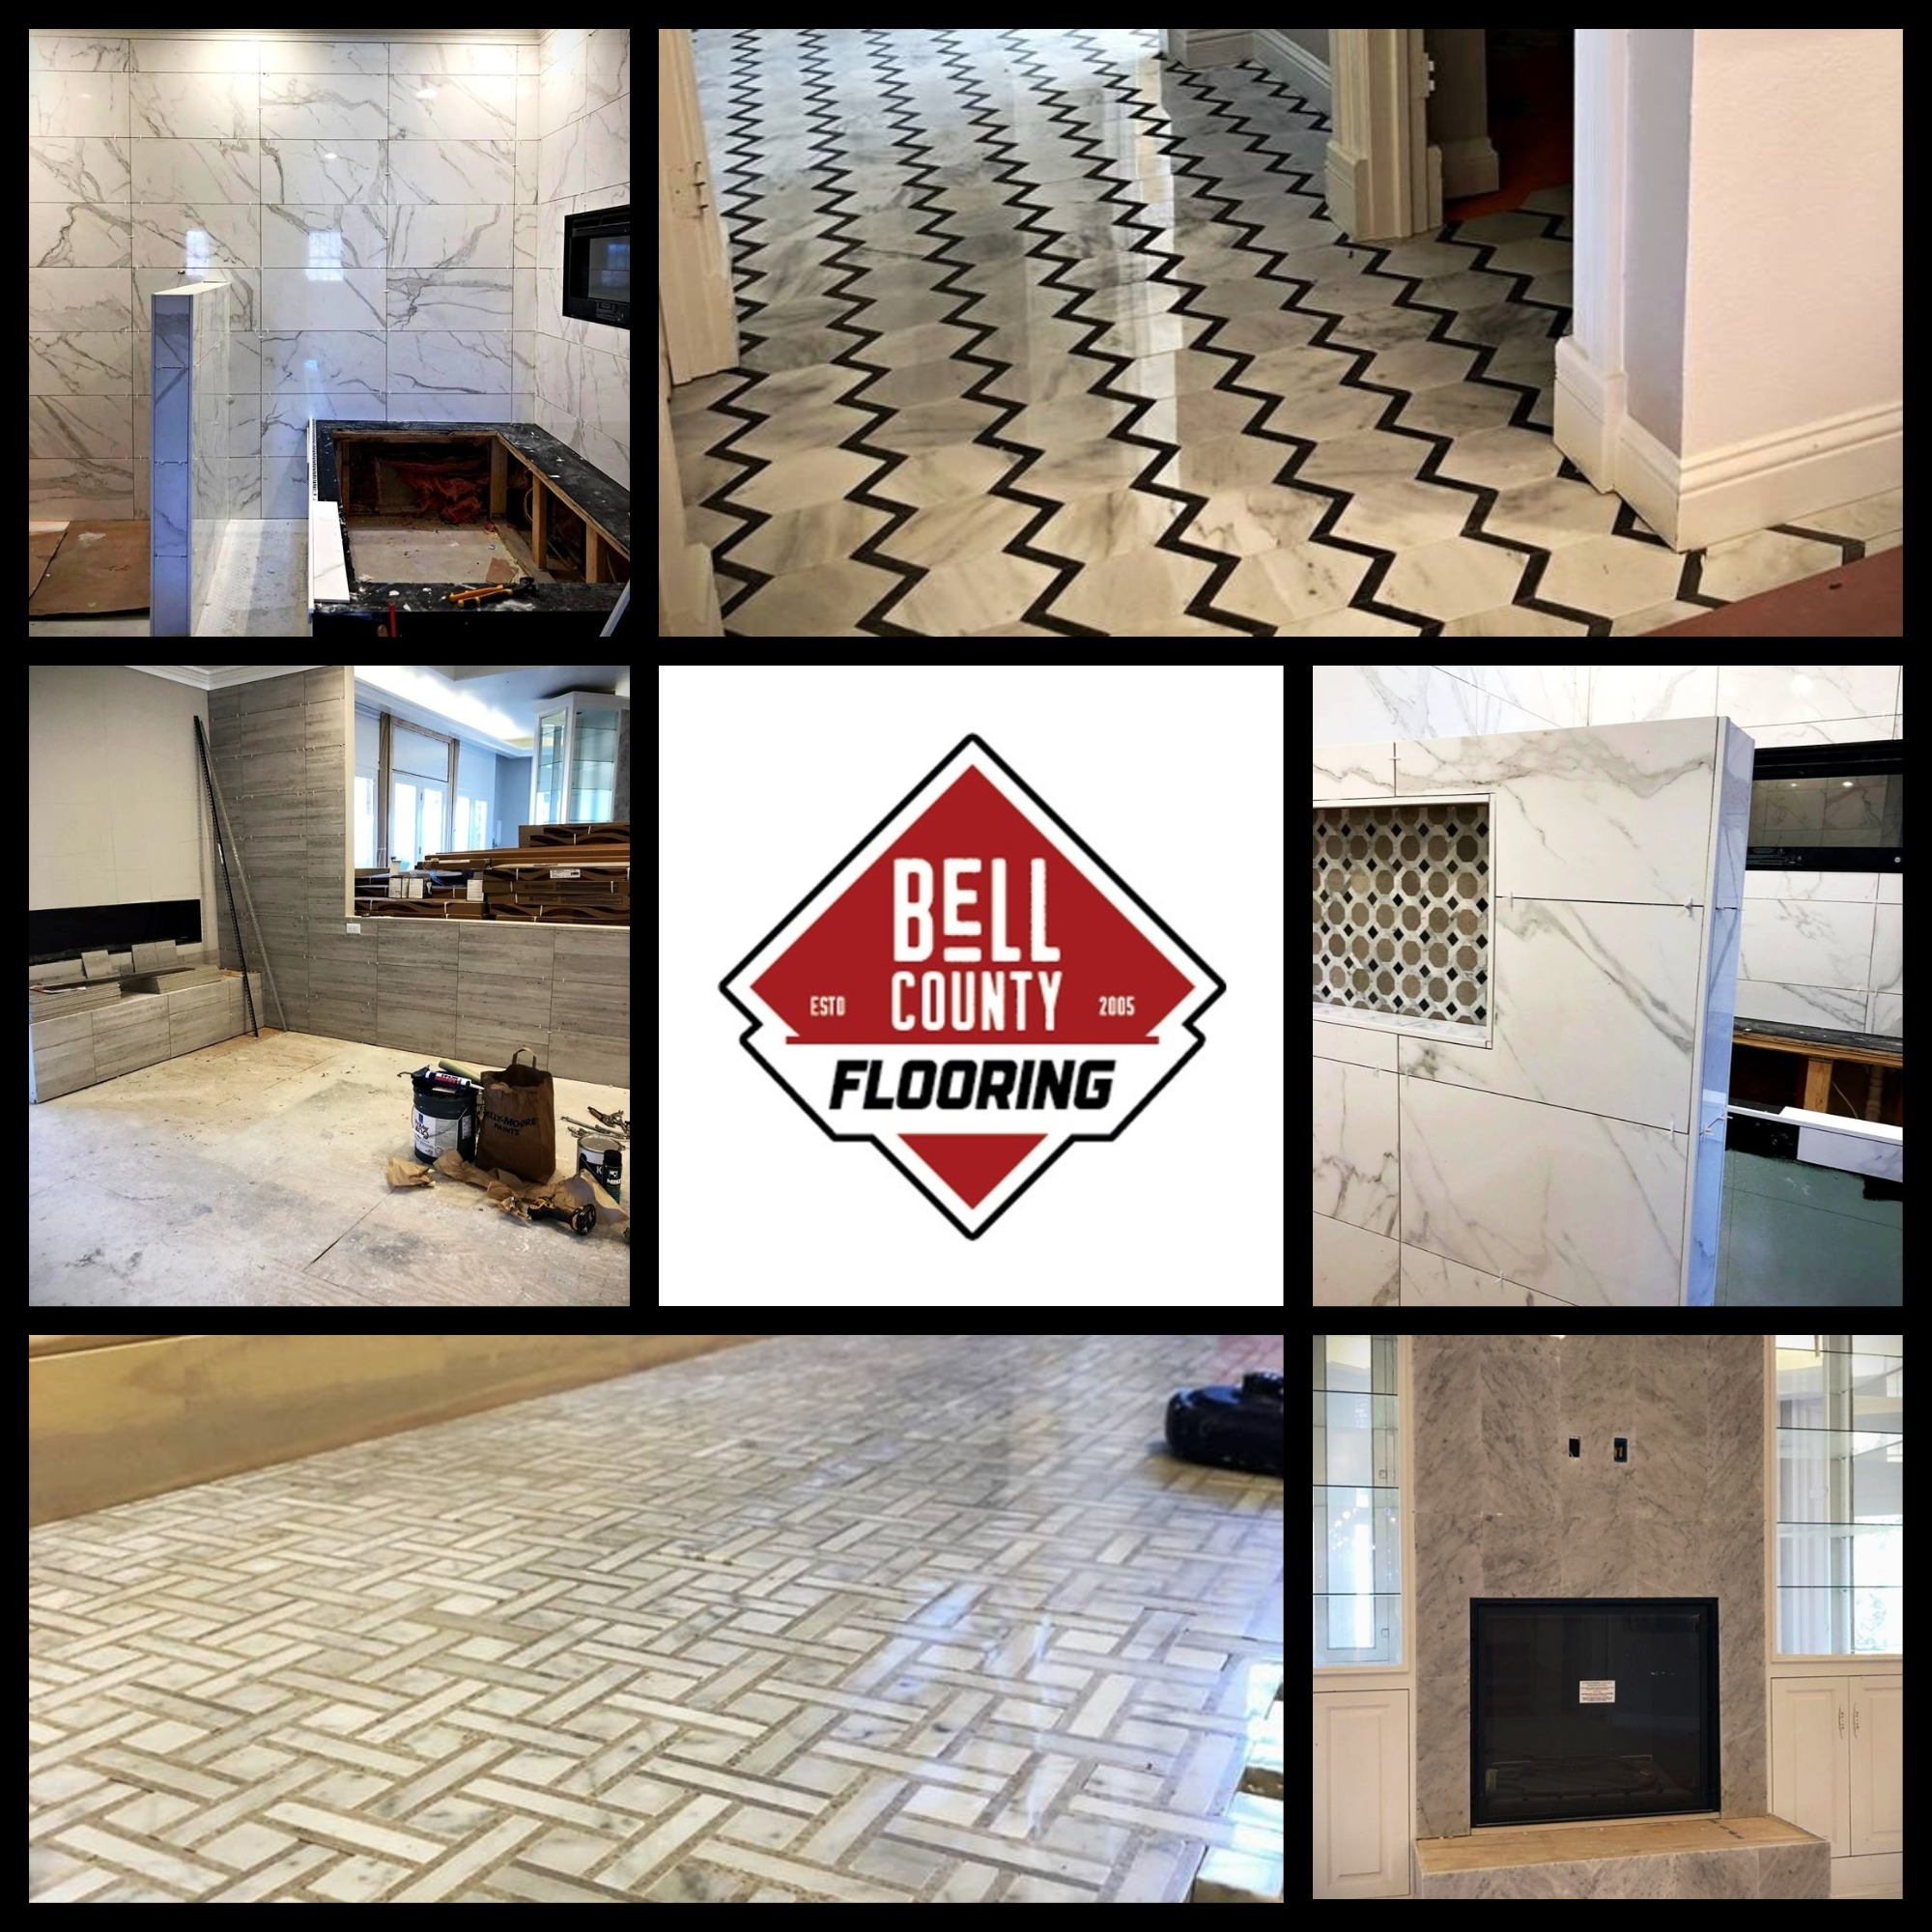 Bell County Flooring image 32